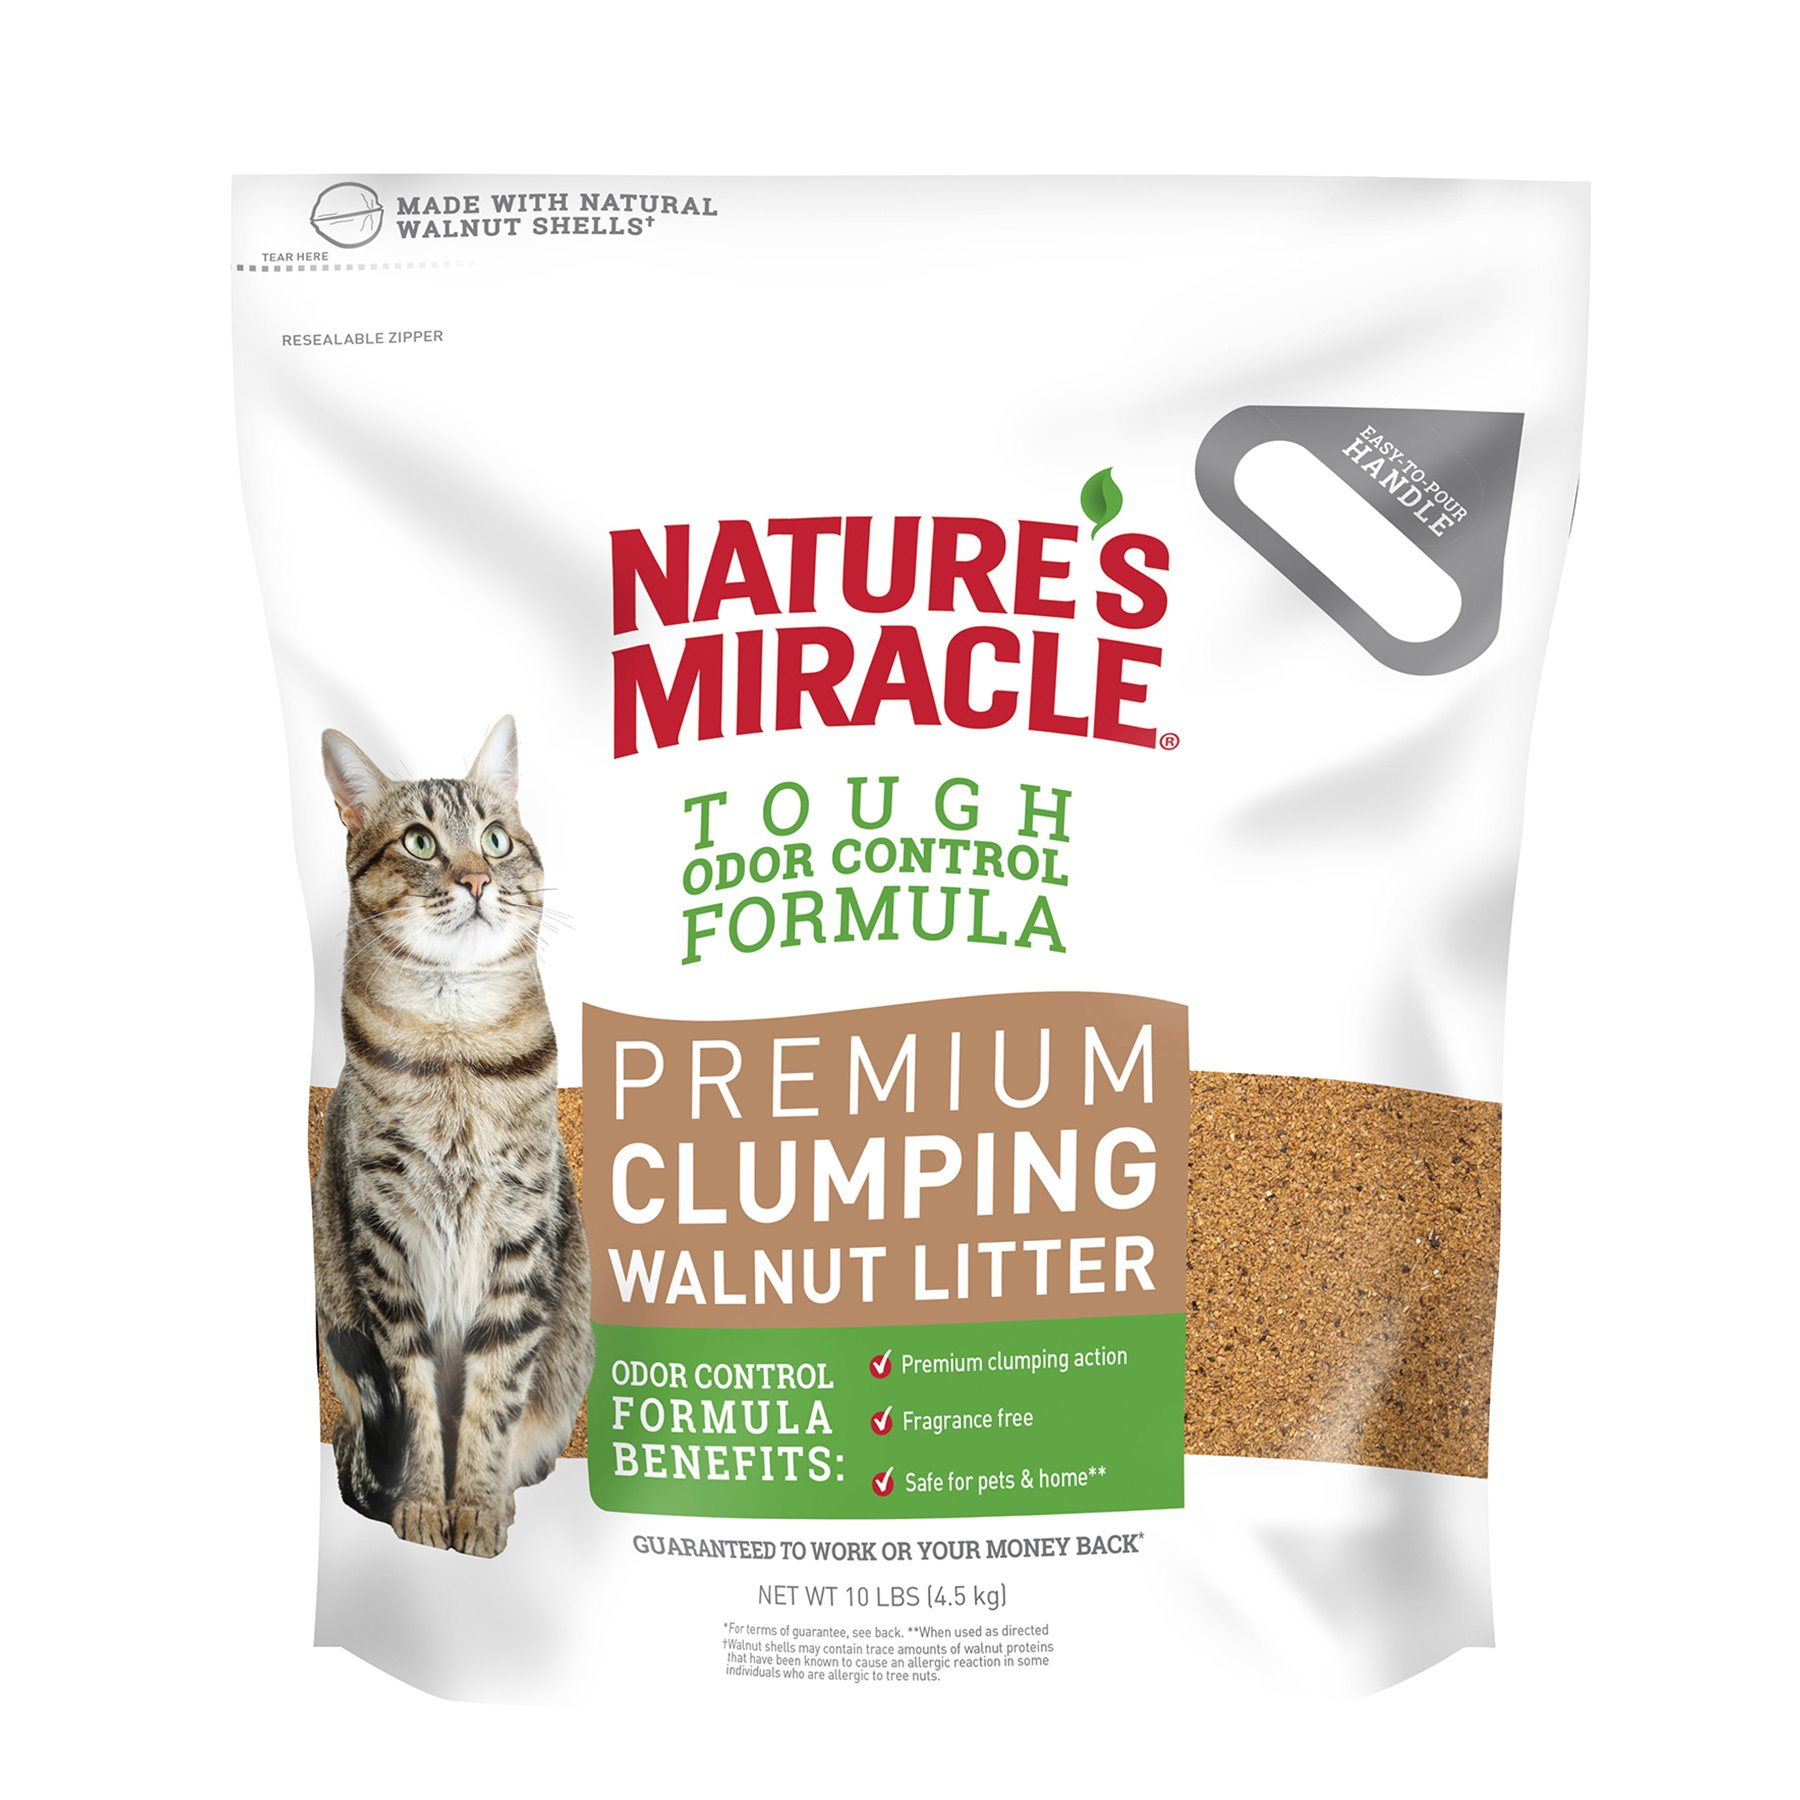 Nature's Miracle Premium Walnut Clumping Litter, 10 lb